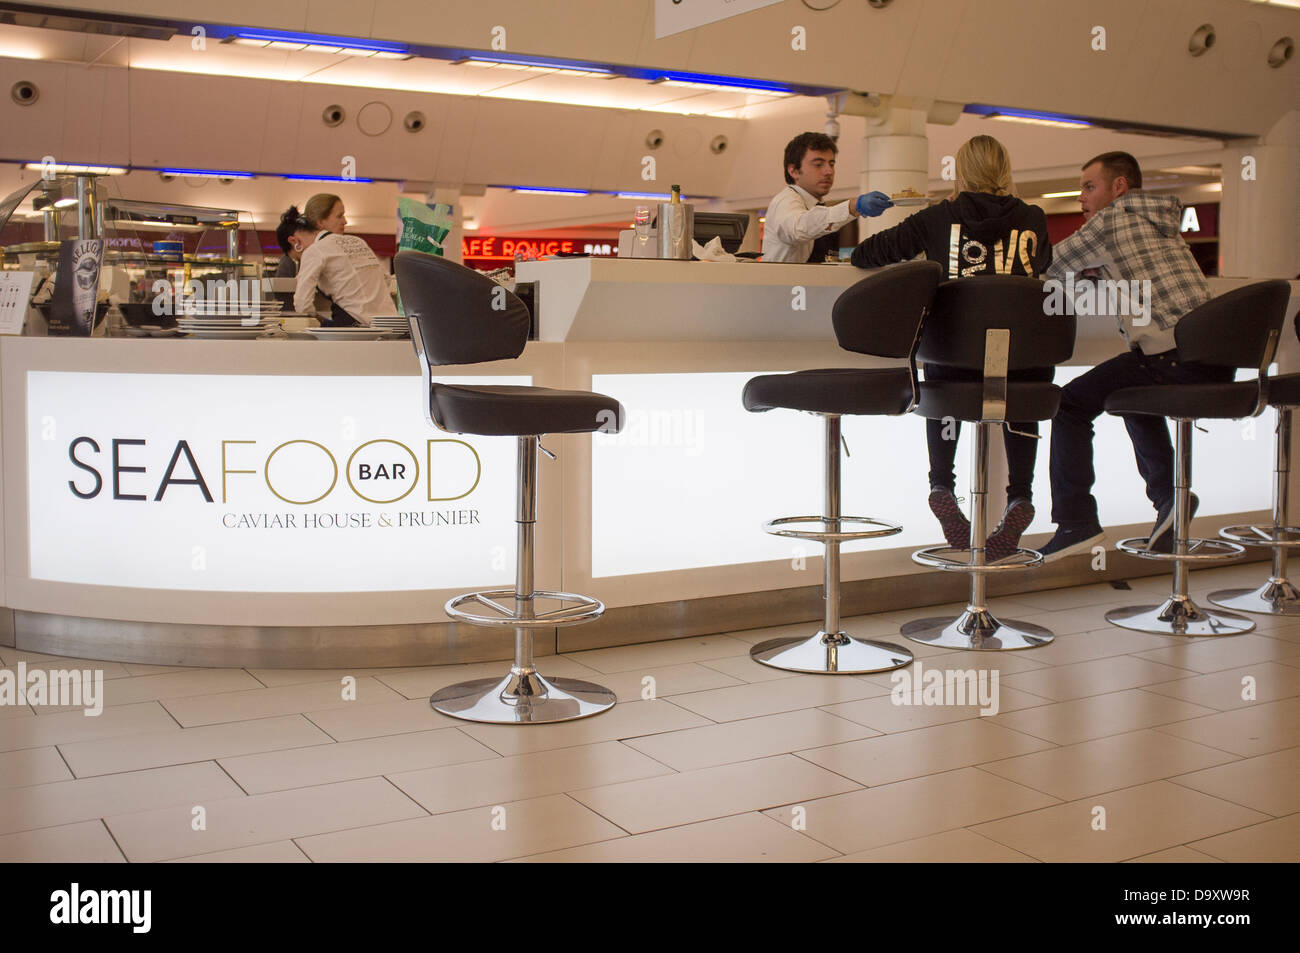 seafood and caviar bar in Gatwick airport - Stock Image